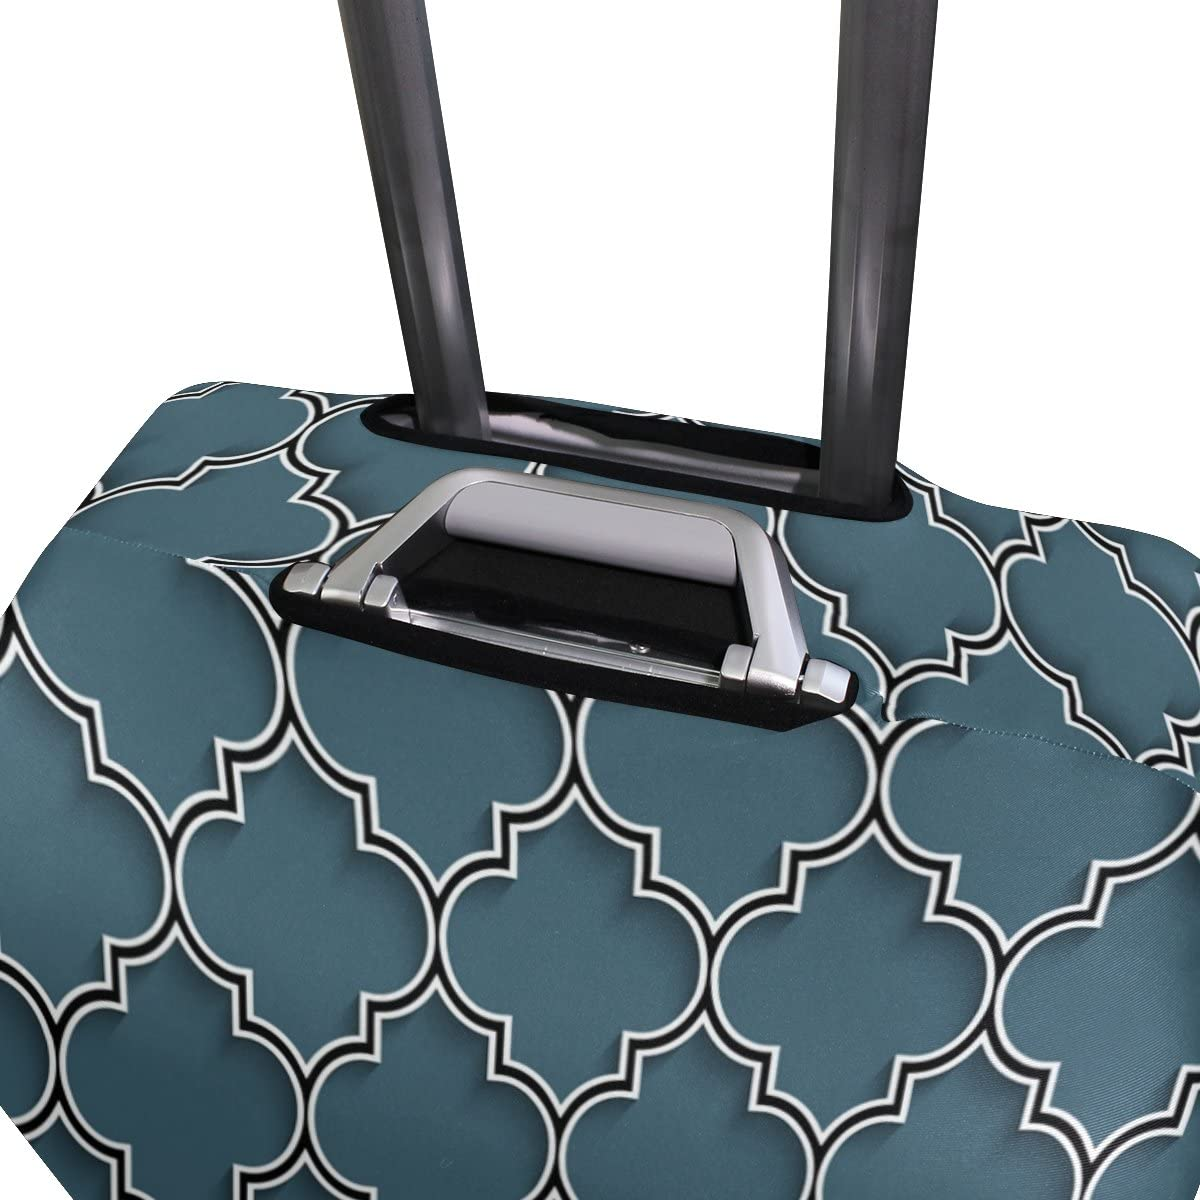 GIOVANIOR 3D Islamic Morocco Style Luggage Cover Suitcase Protector Carry On Covers